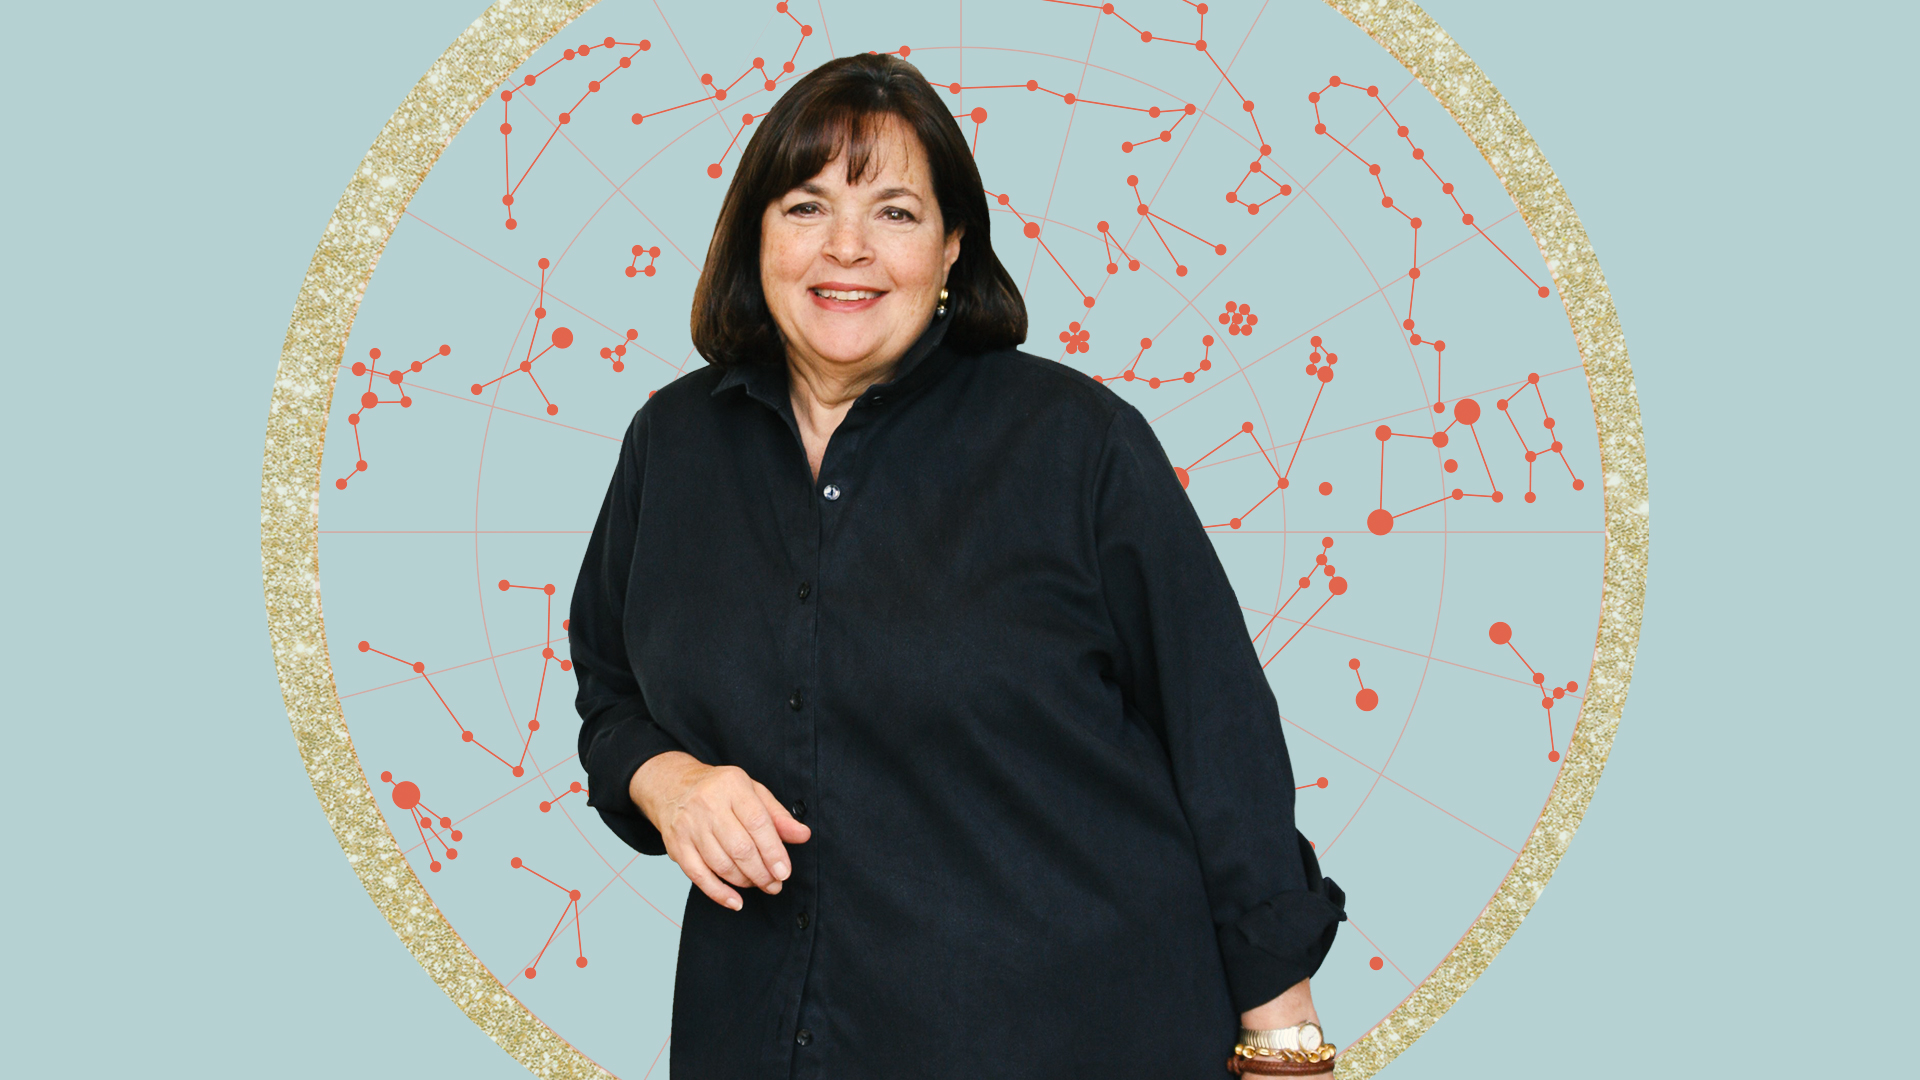 The Ina Garten Dessert You Should Make Tonight, Based On Your Zodiac Sign